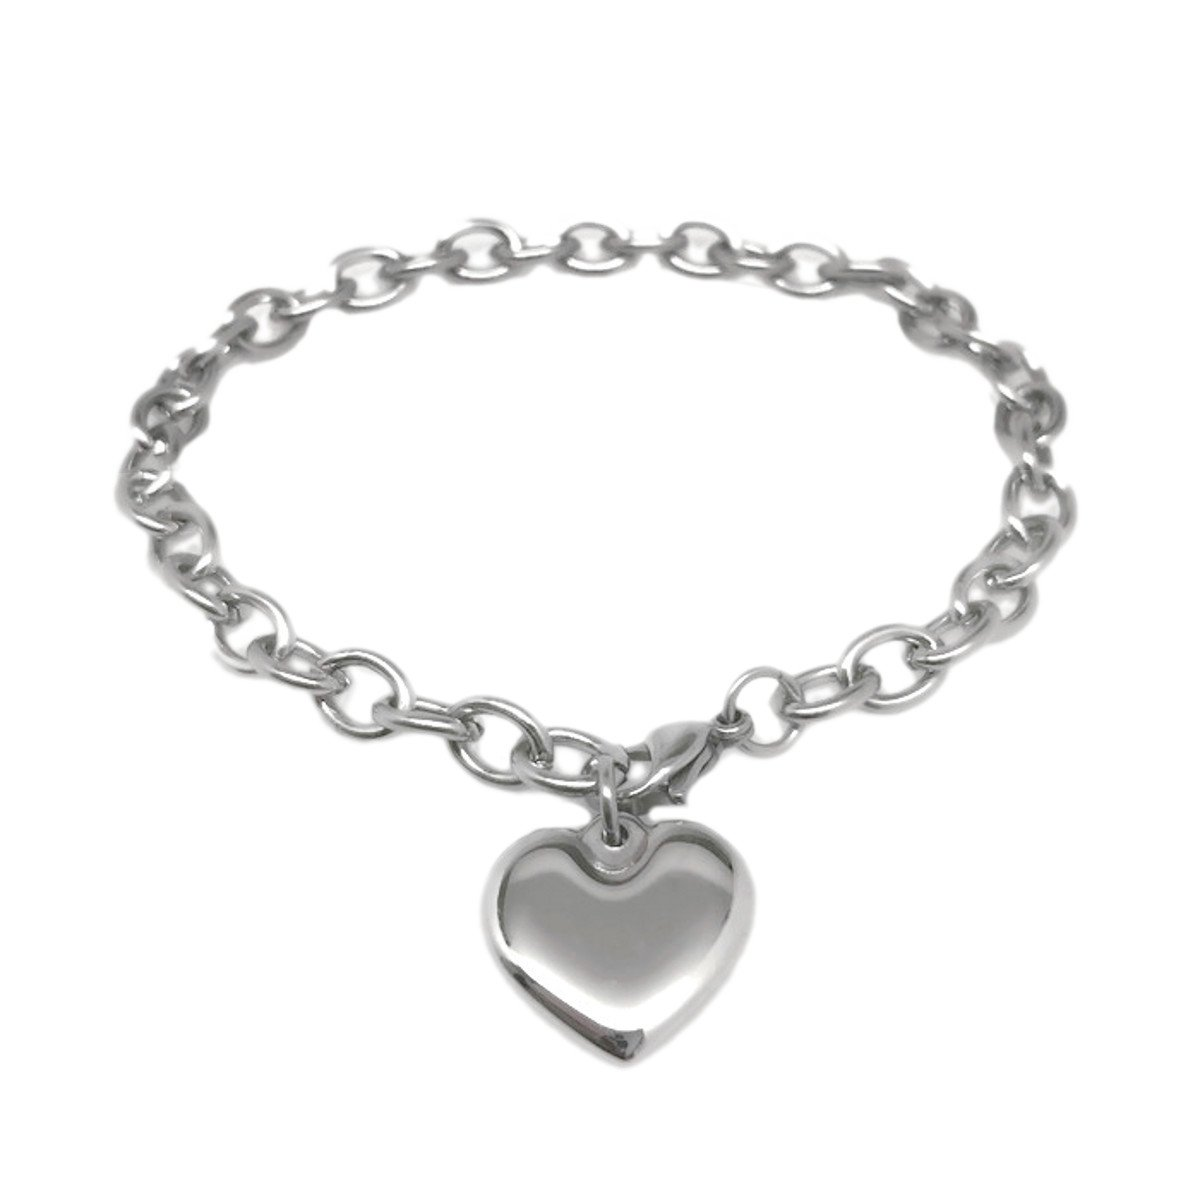 Womens Stainless Steel Heart Charm Chain Bracelet Adjustable (7.5 - 8 Inch)